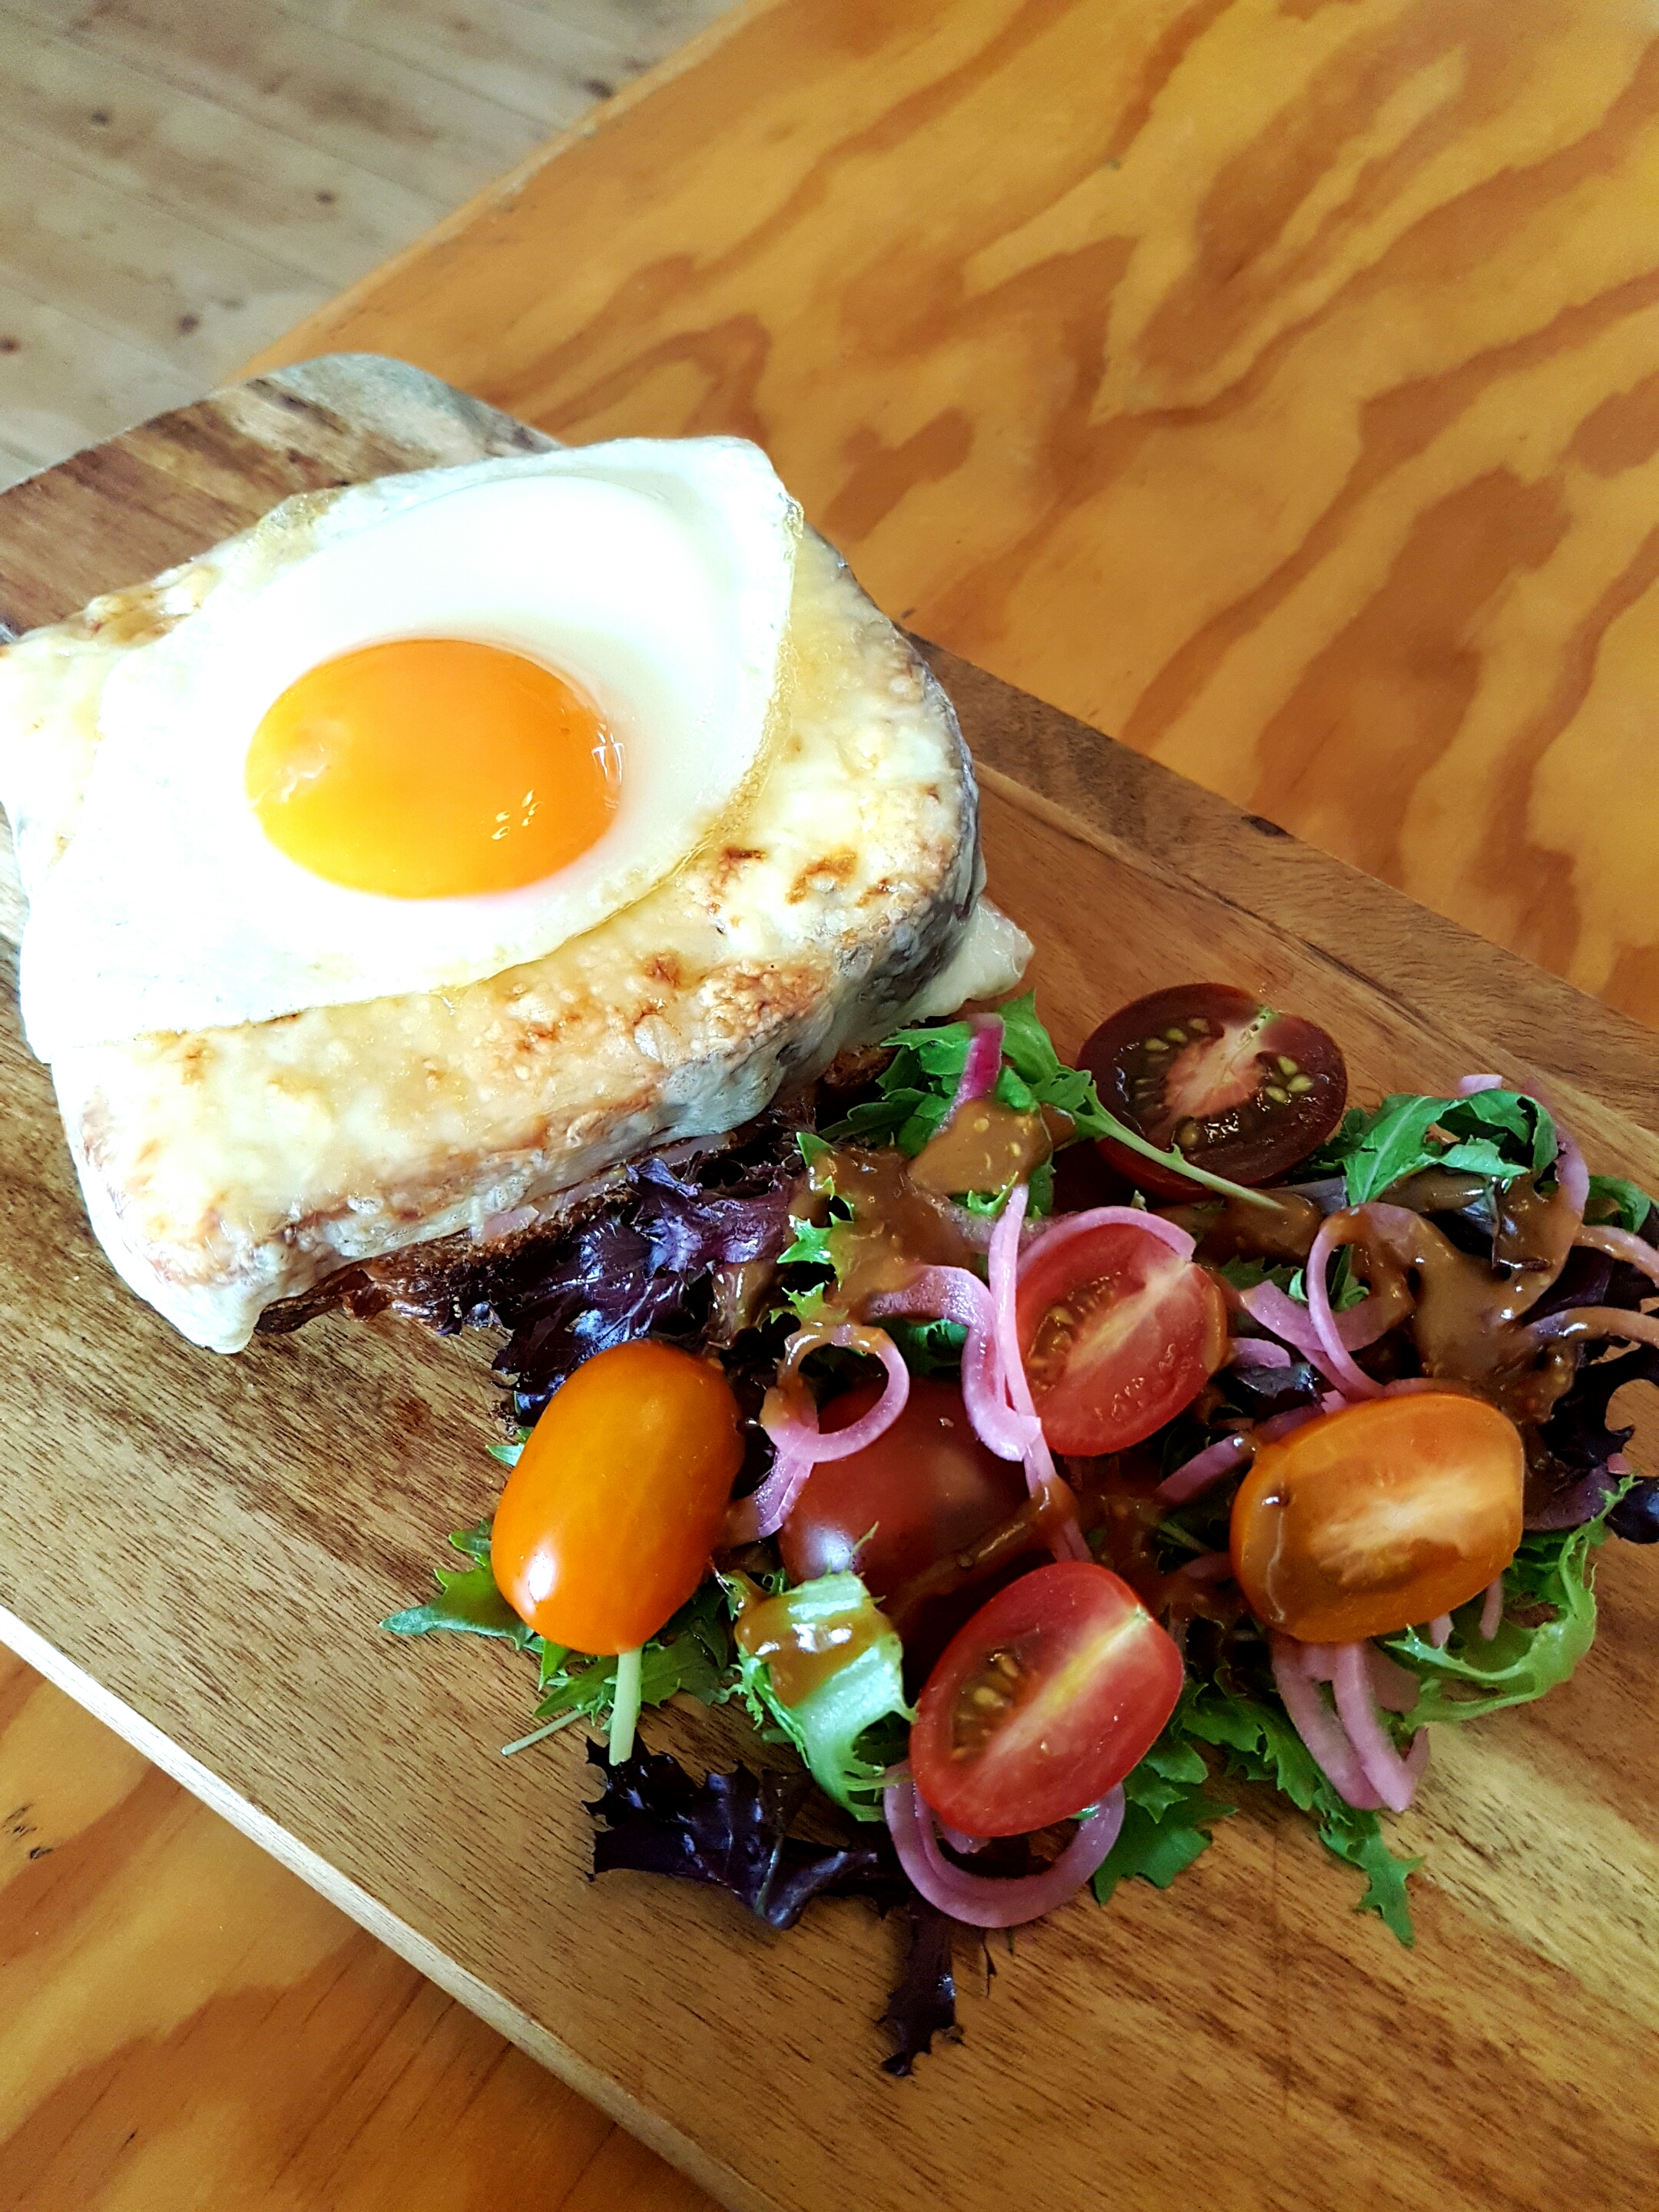 Croque Madame - For breakfast or lunch it's a classic!